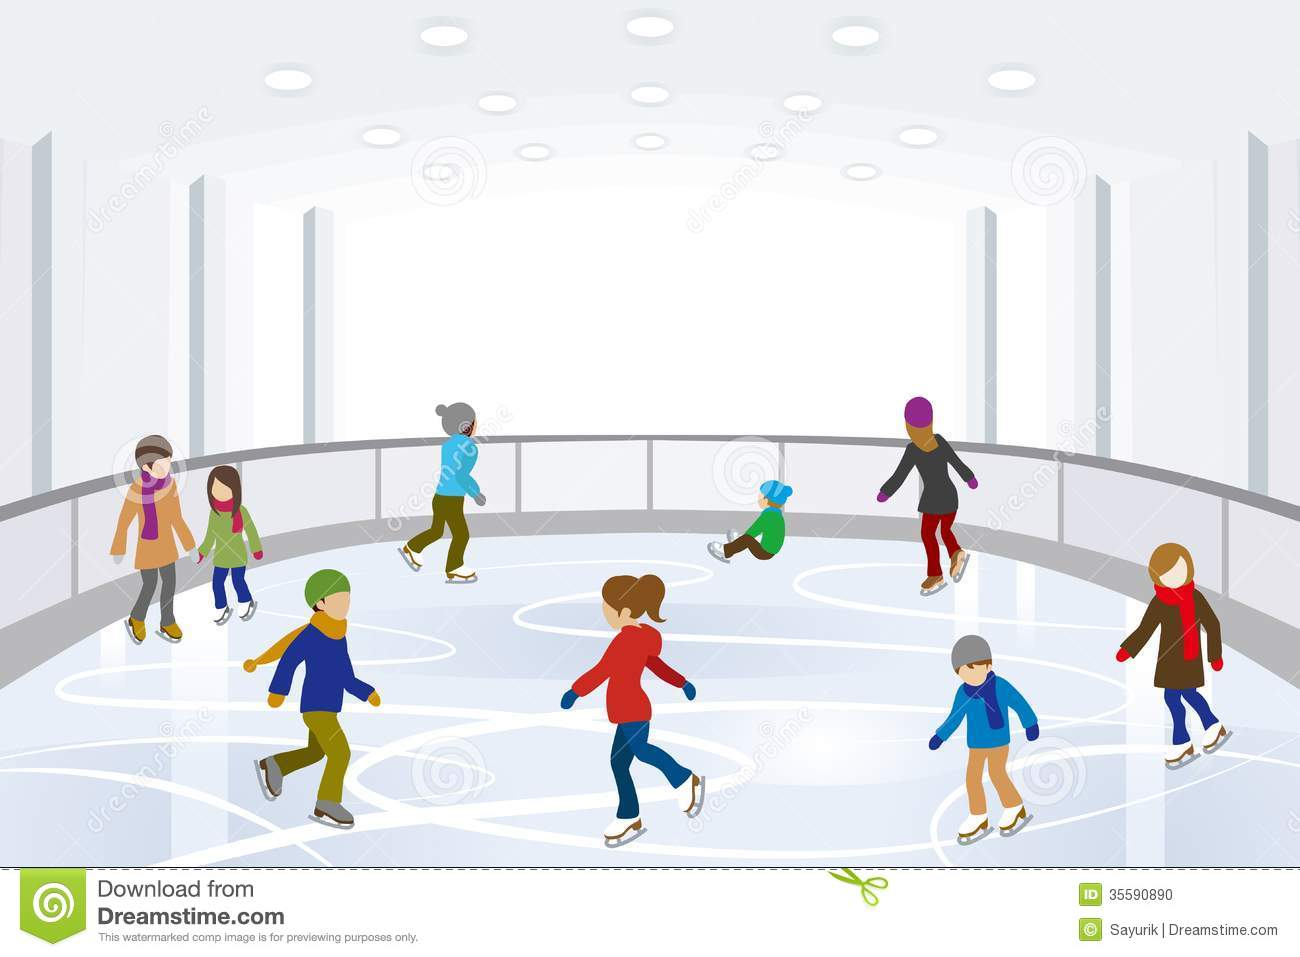 Ice rink clipart #20